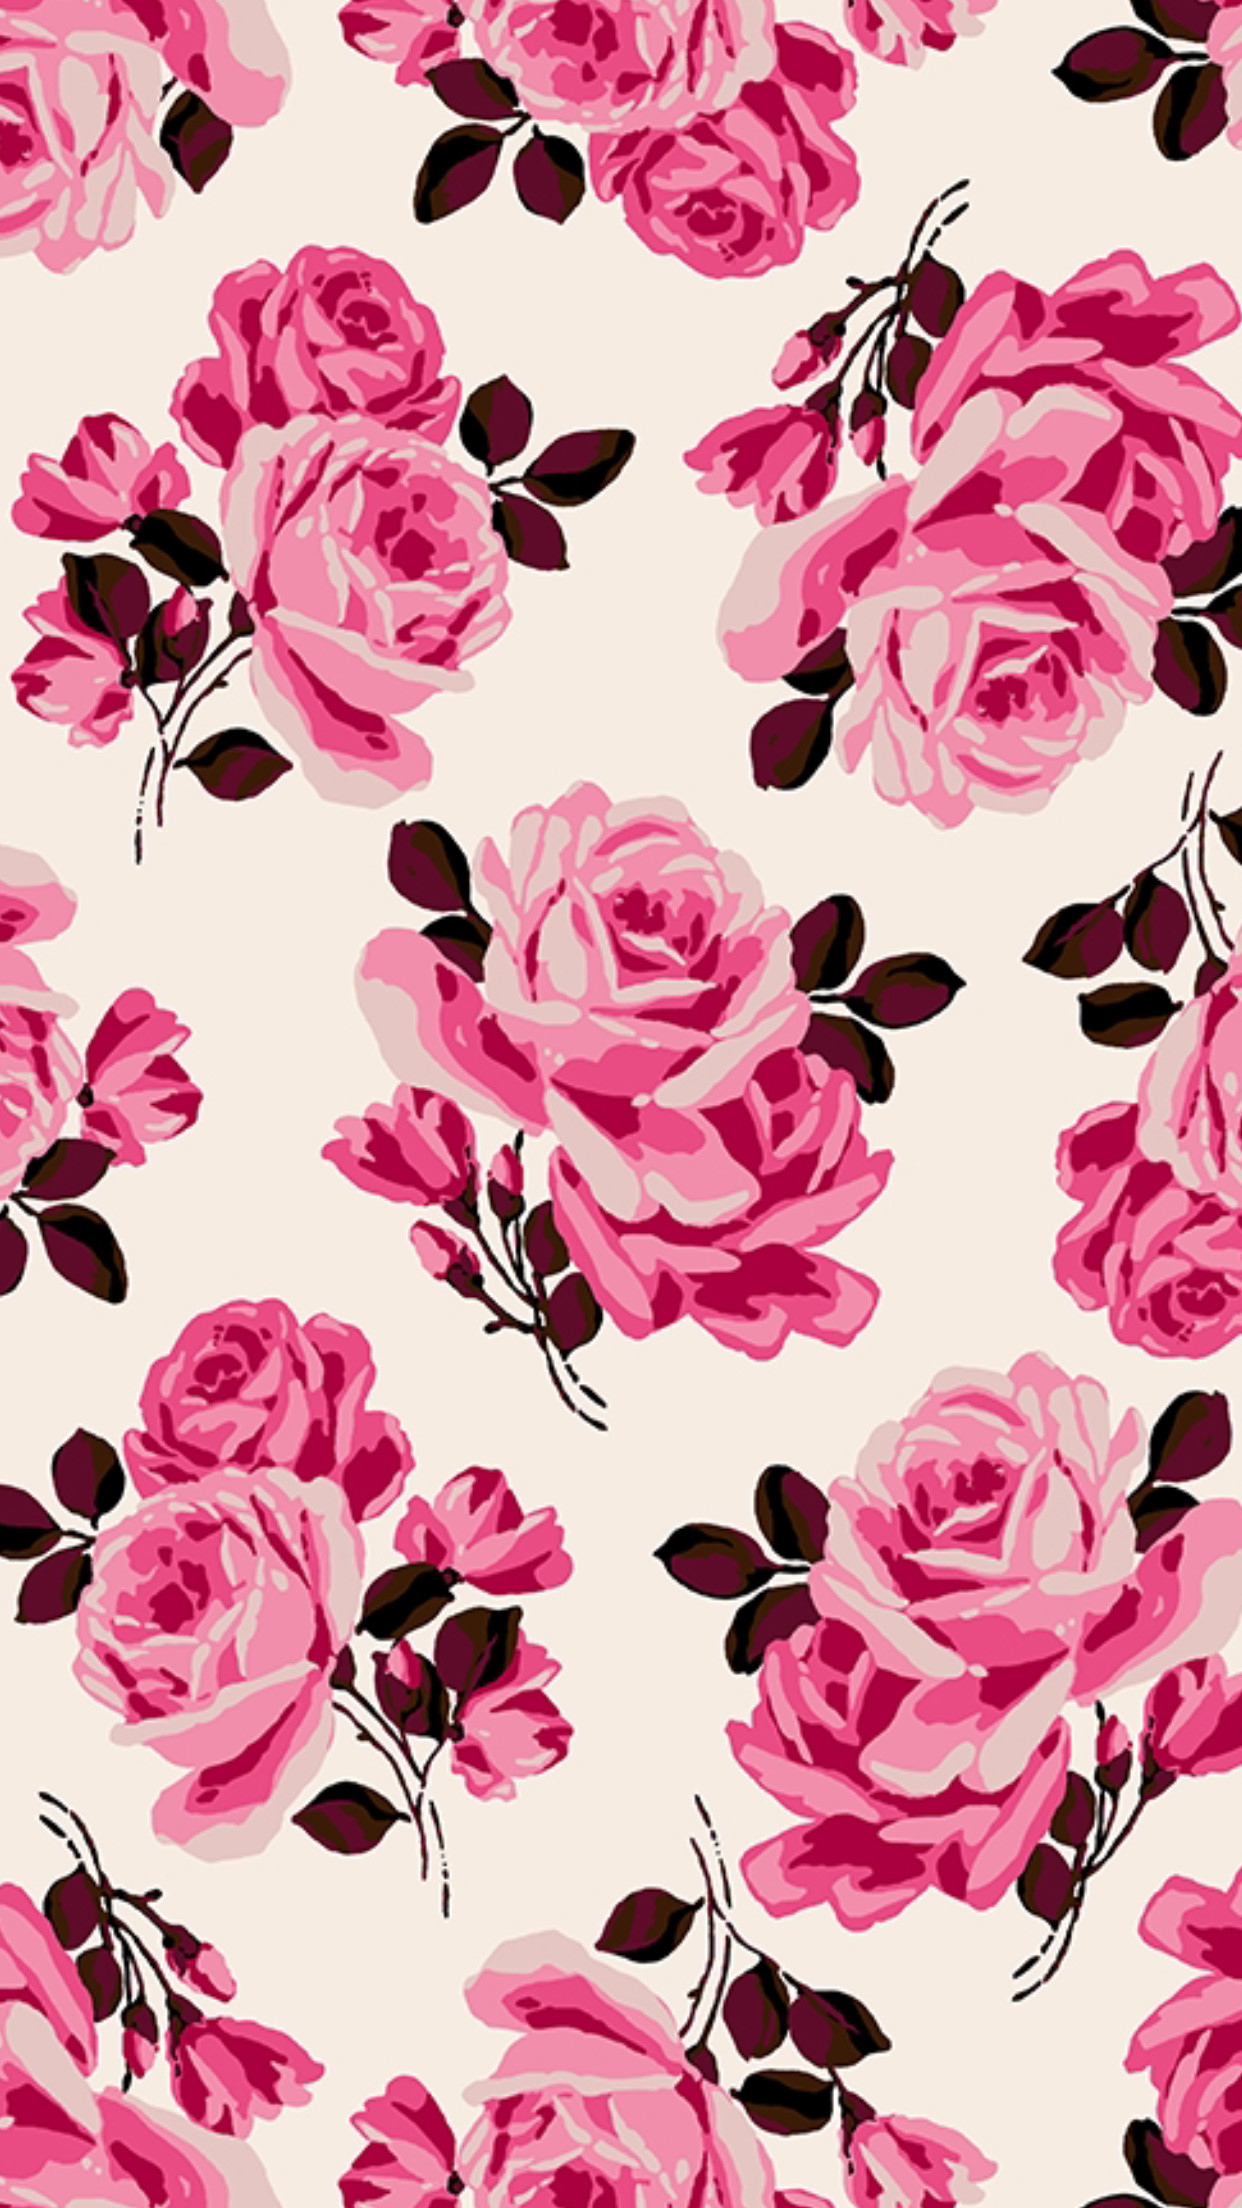 Beauty roses. Love Wallpaper BackgroundsPink Wallpaper IphoneRose …